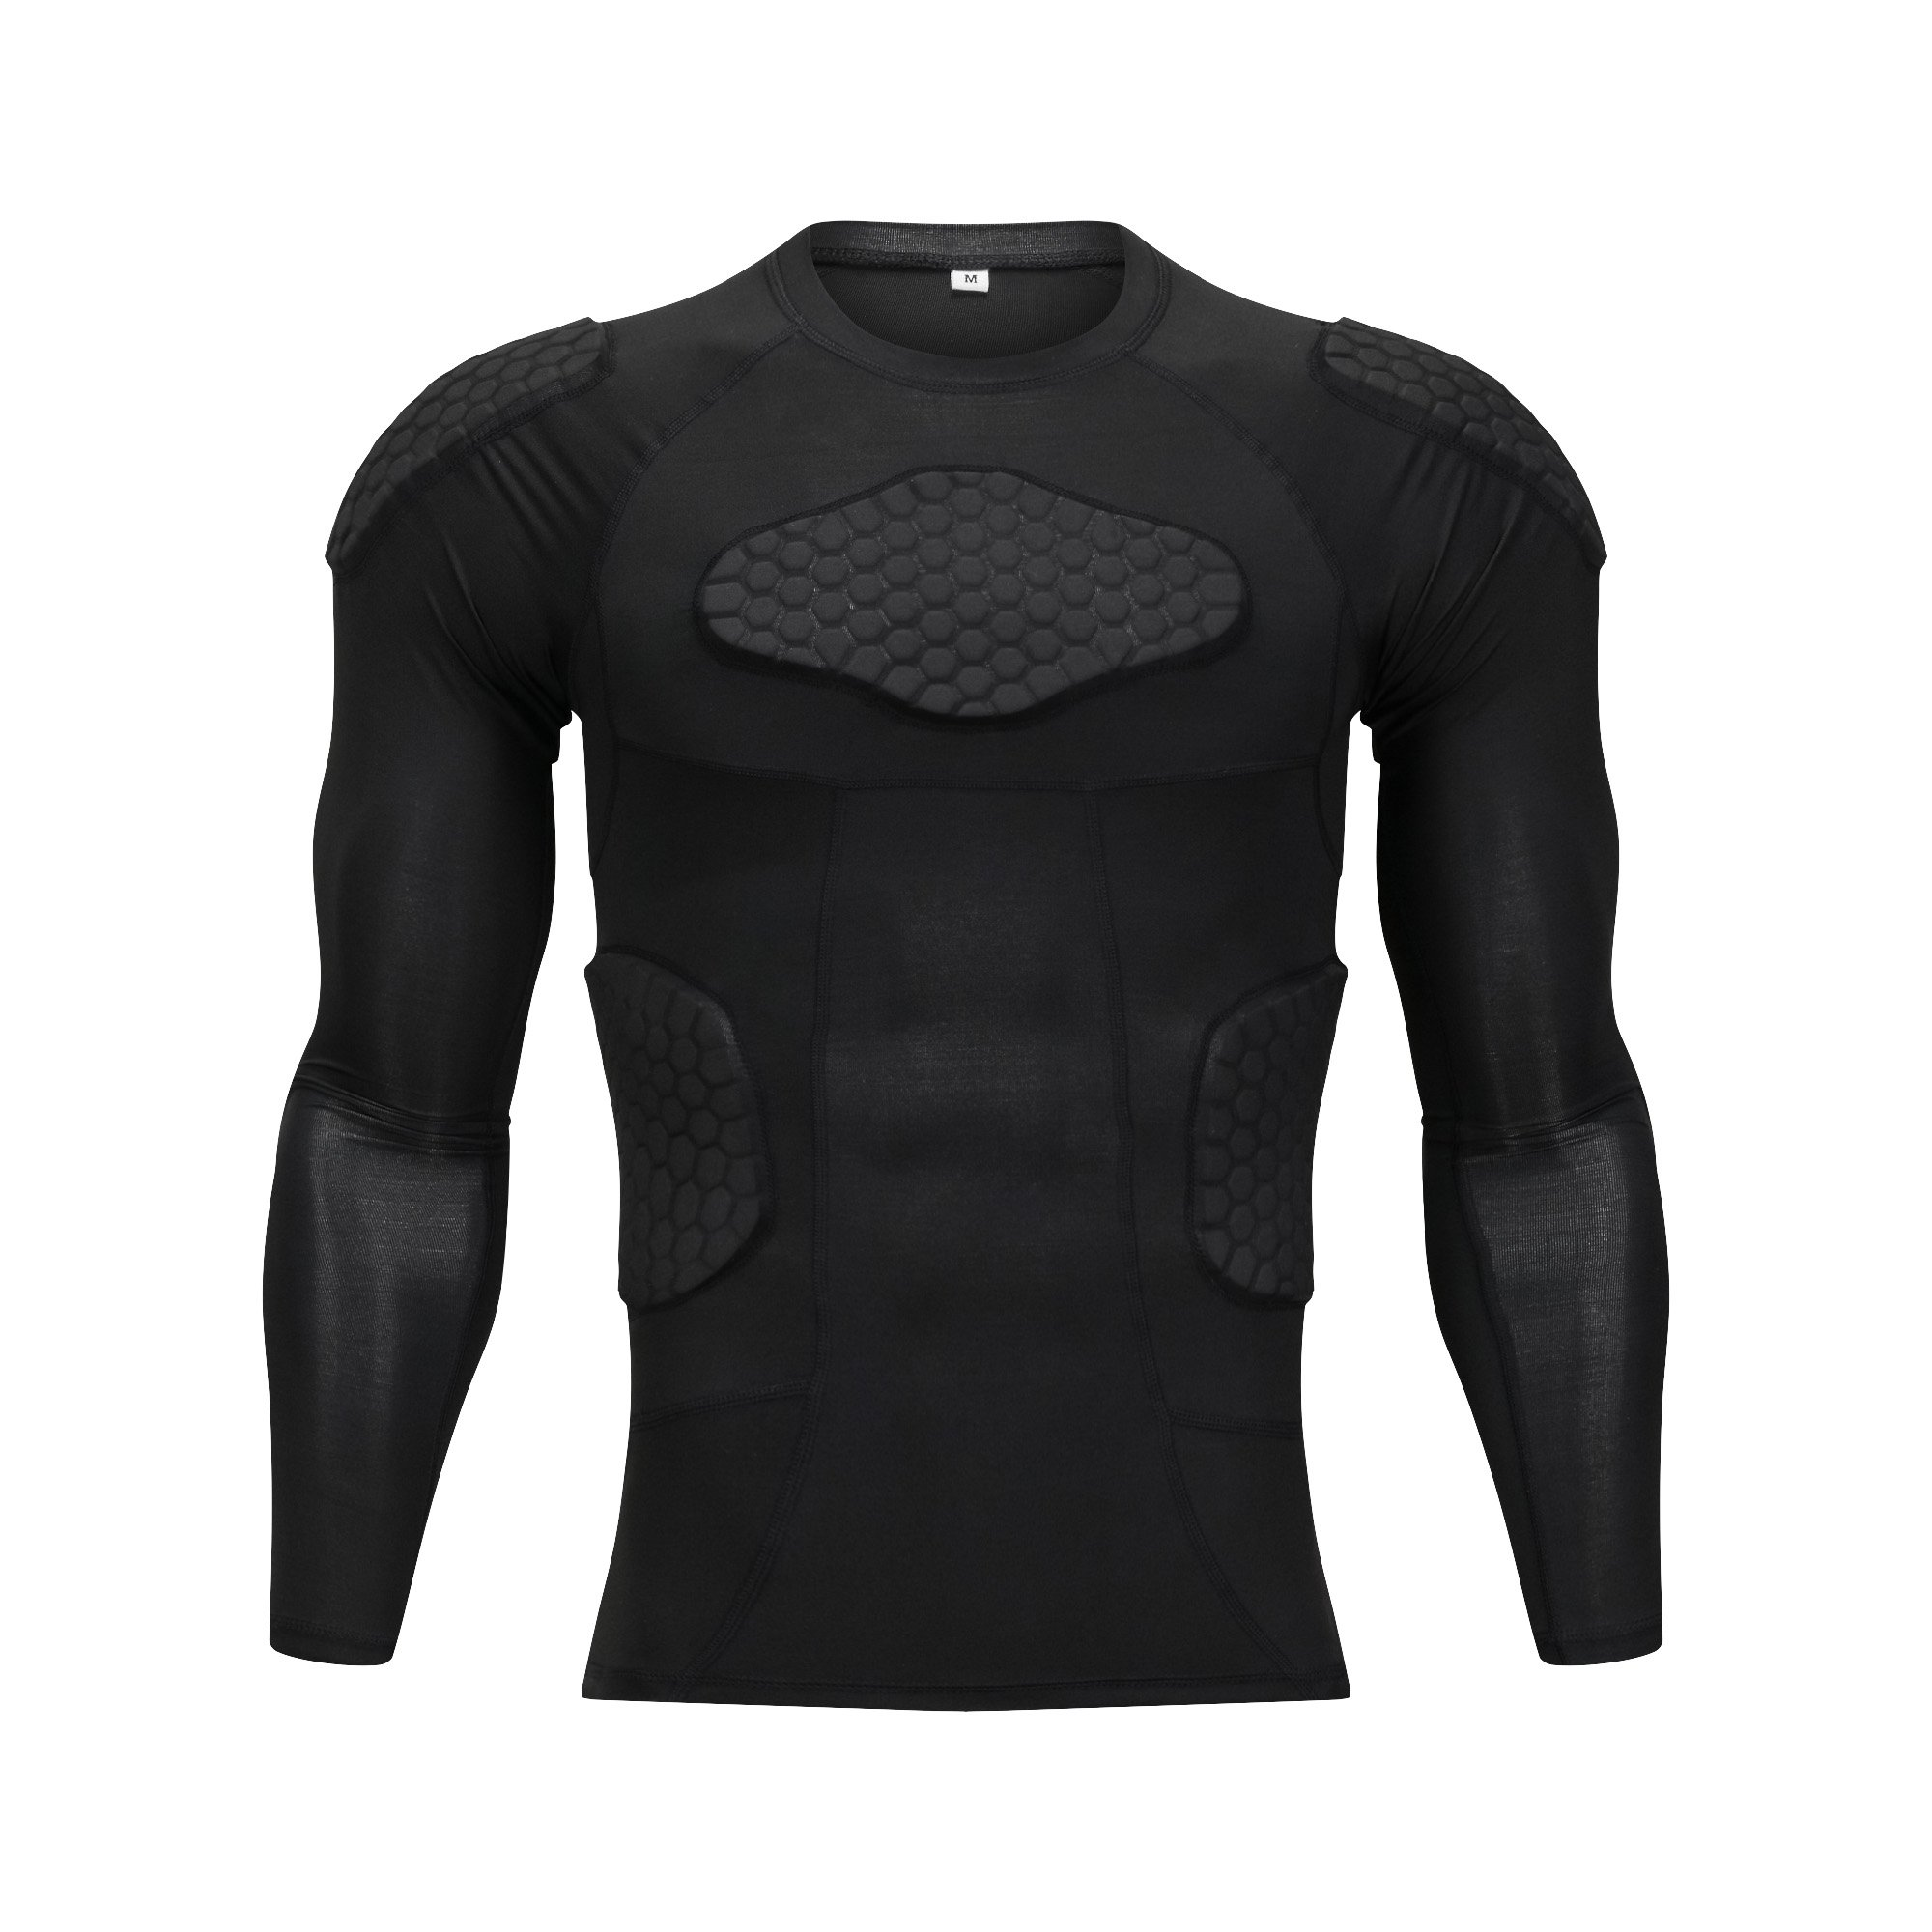 TUOY Men's Padded Compression Shirt Long Sleeve Shirt Chest Rib Protector for Football Paintball (Black Long T-Shirt, Large) by TUOY